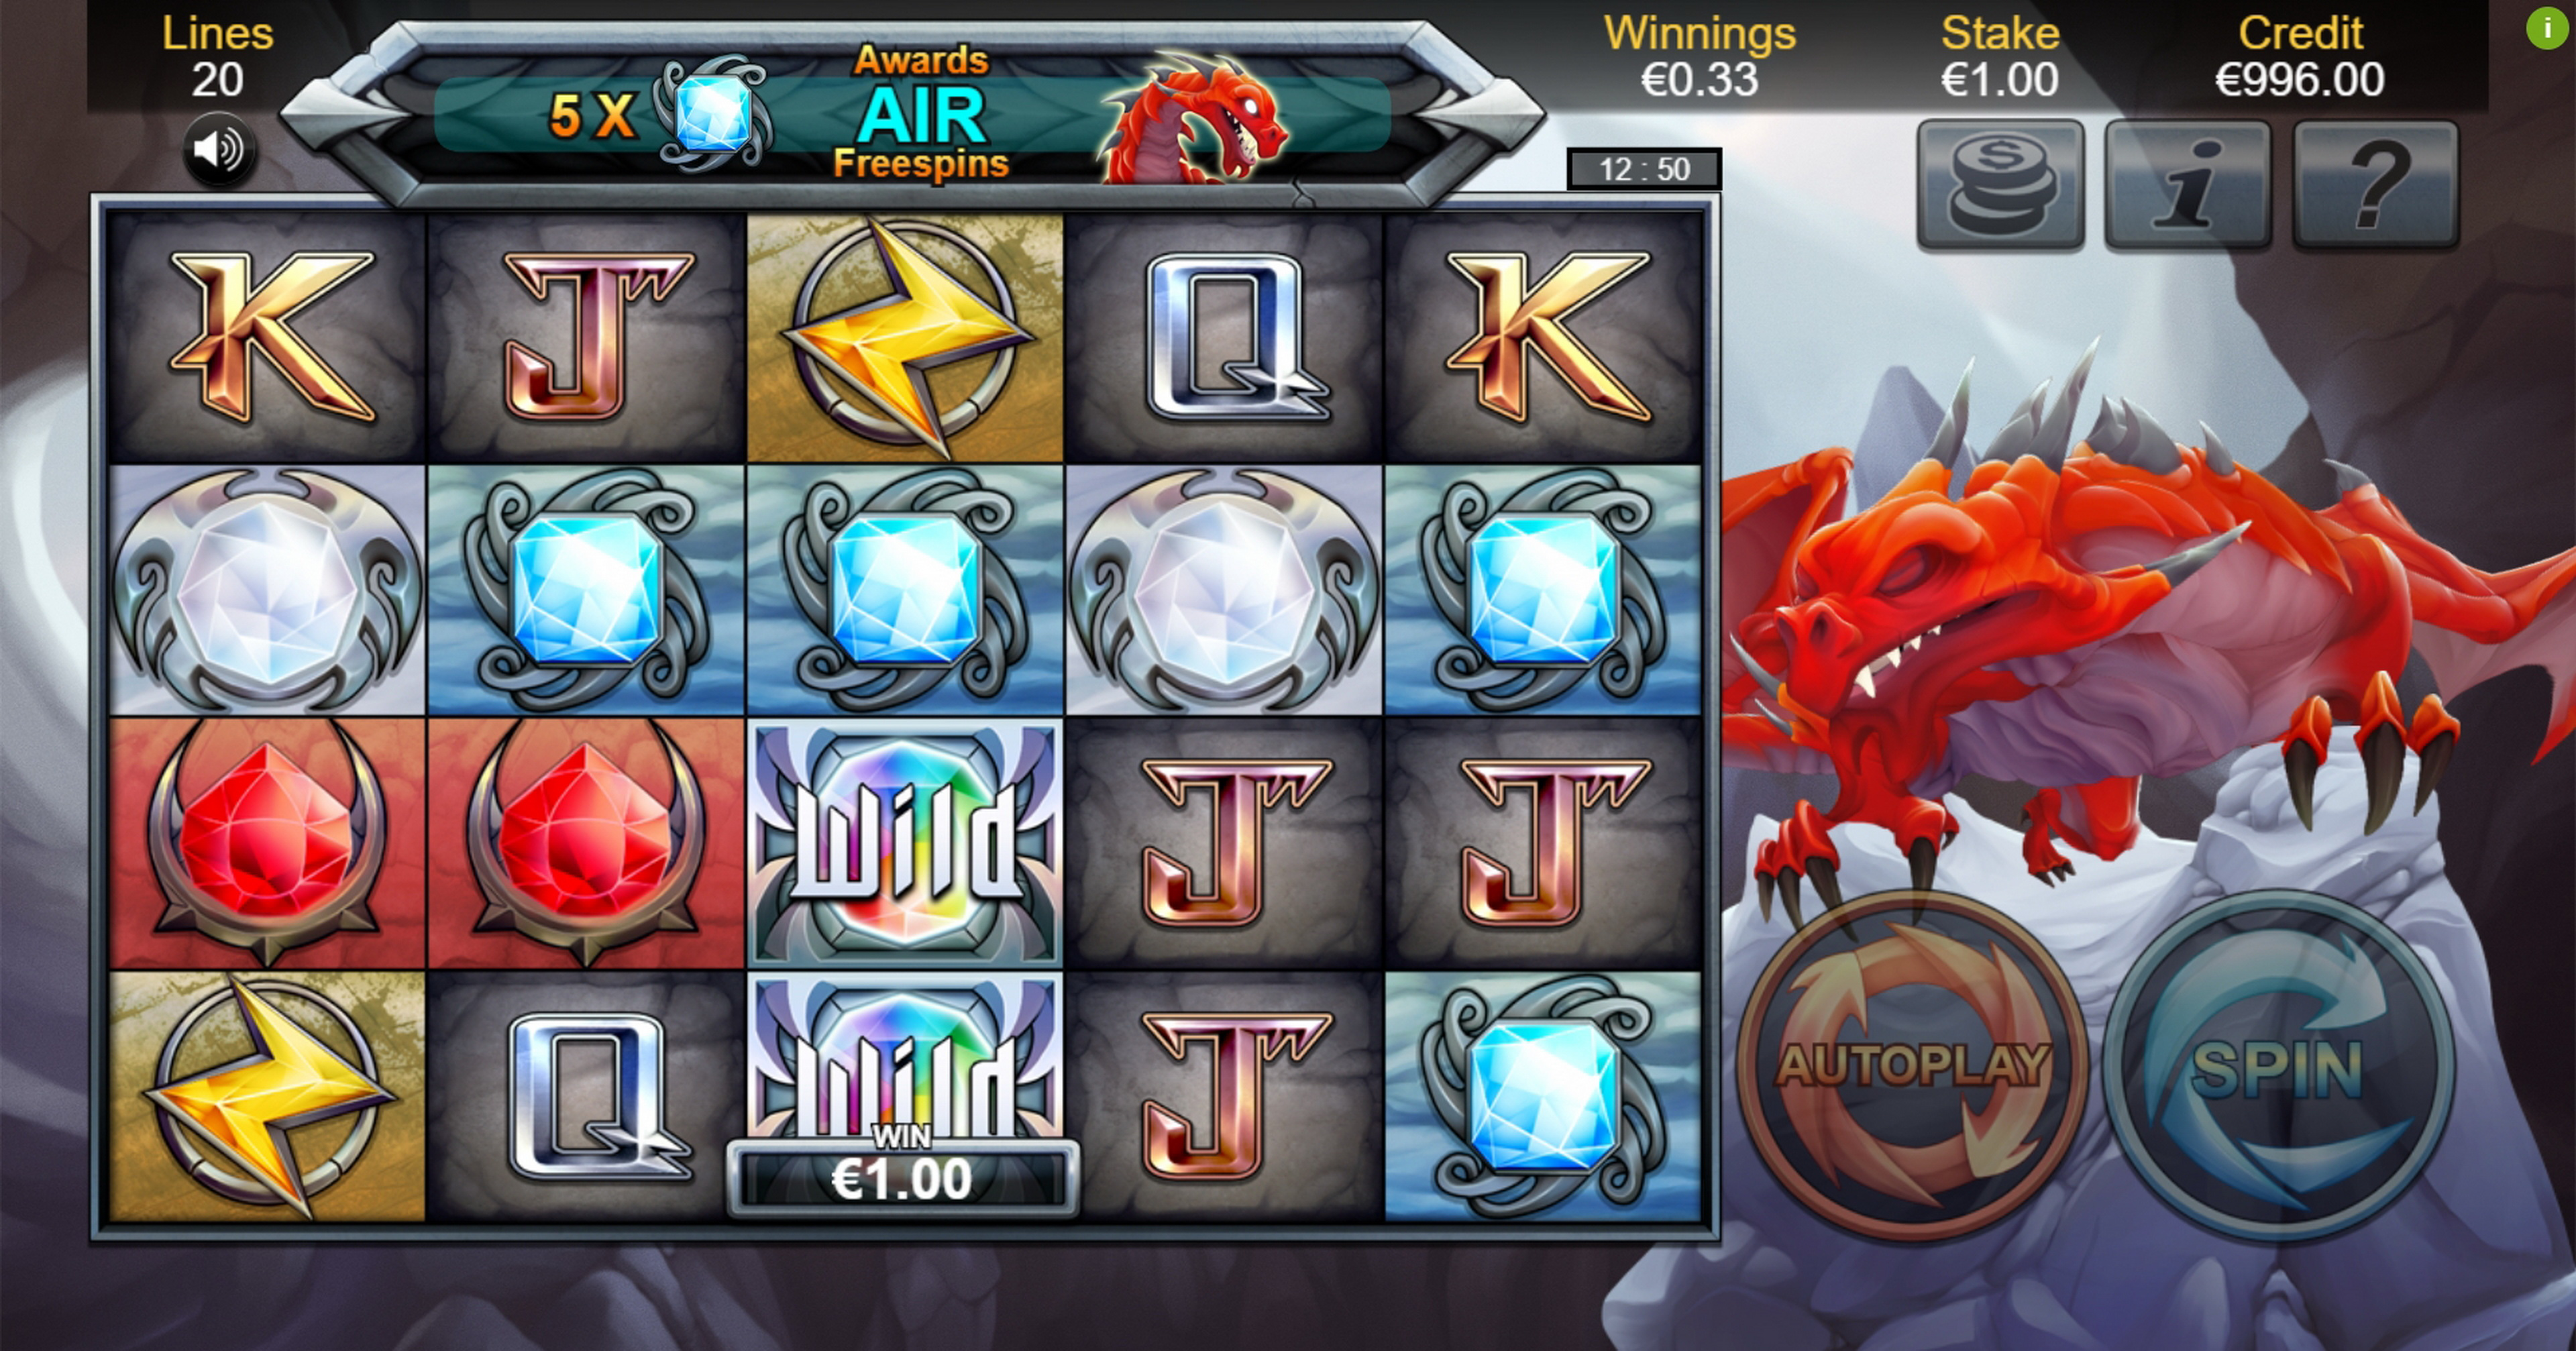 Win Money in Dragon Lore Free Slot Game by Bulletproof Games